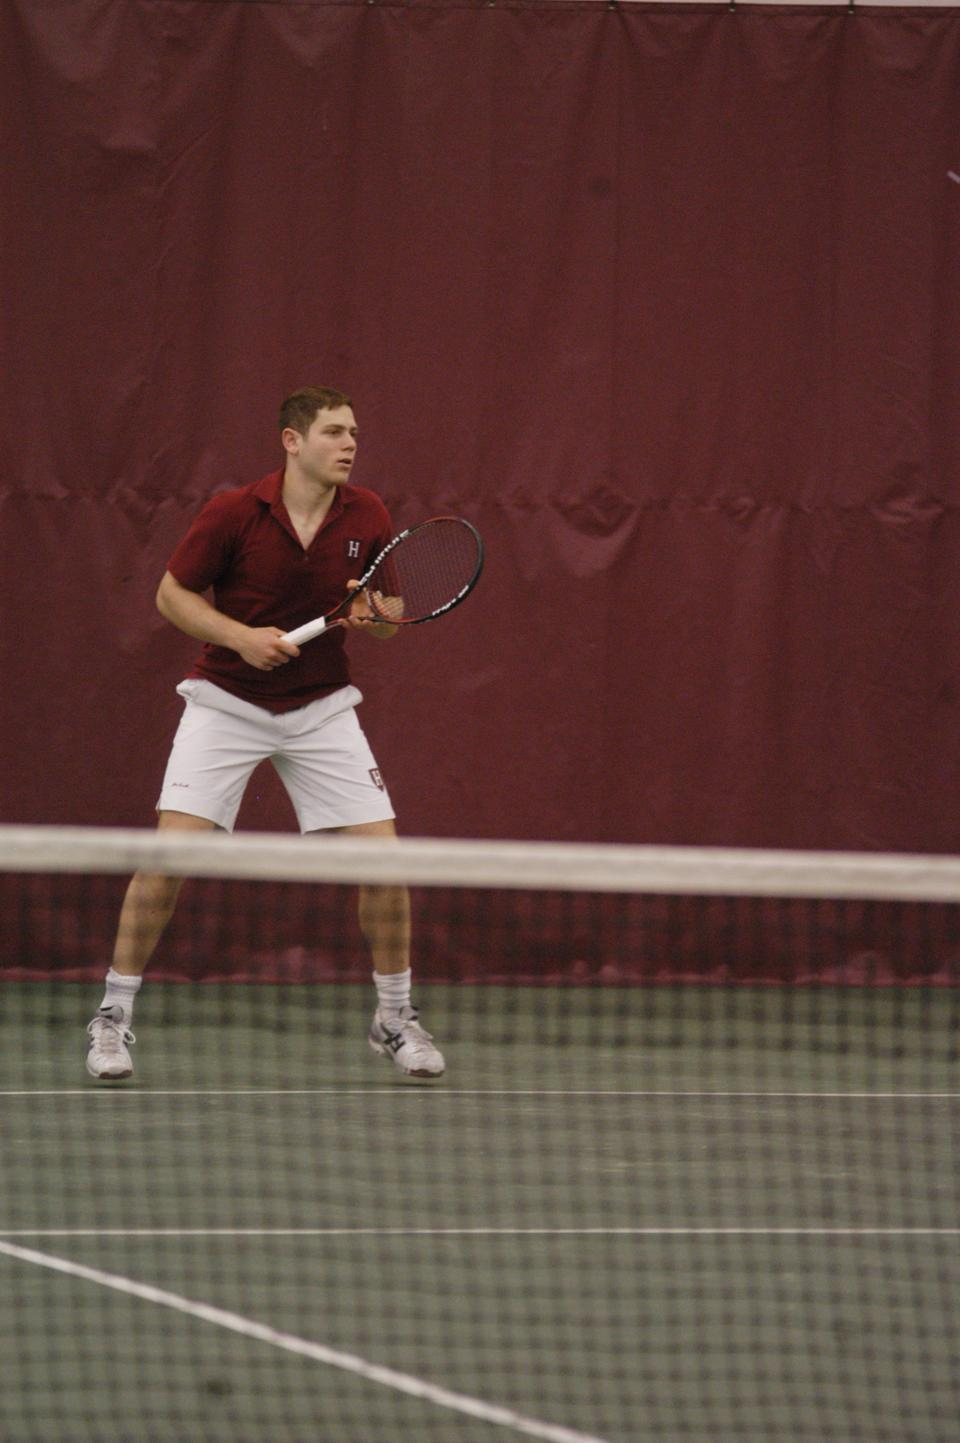 Senior Jonathan Pearlman, shown above in earlier action, and the Harvard men's tennis team had a strong performance at the Harvard Winter Invite this past weekend, winning 22 of 26 matches in singles play and 10 of 12 matches in doubles play against Marist and Fordham.